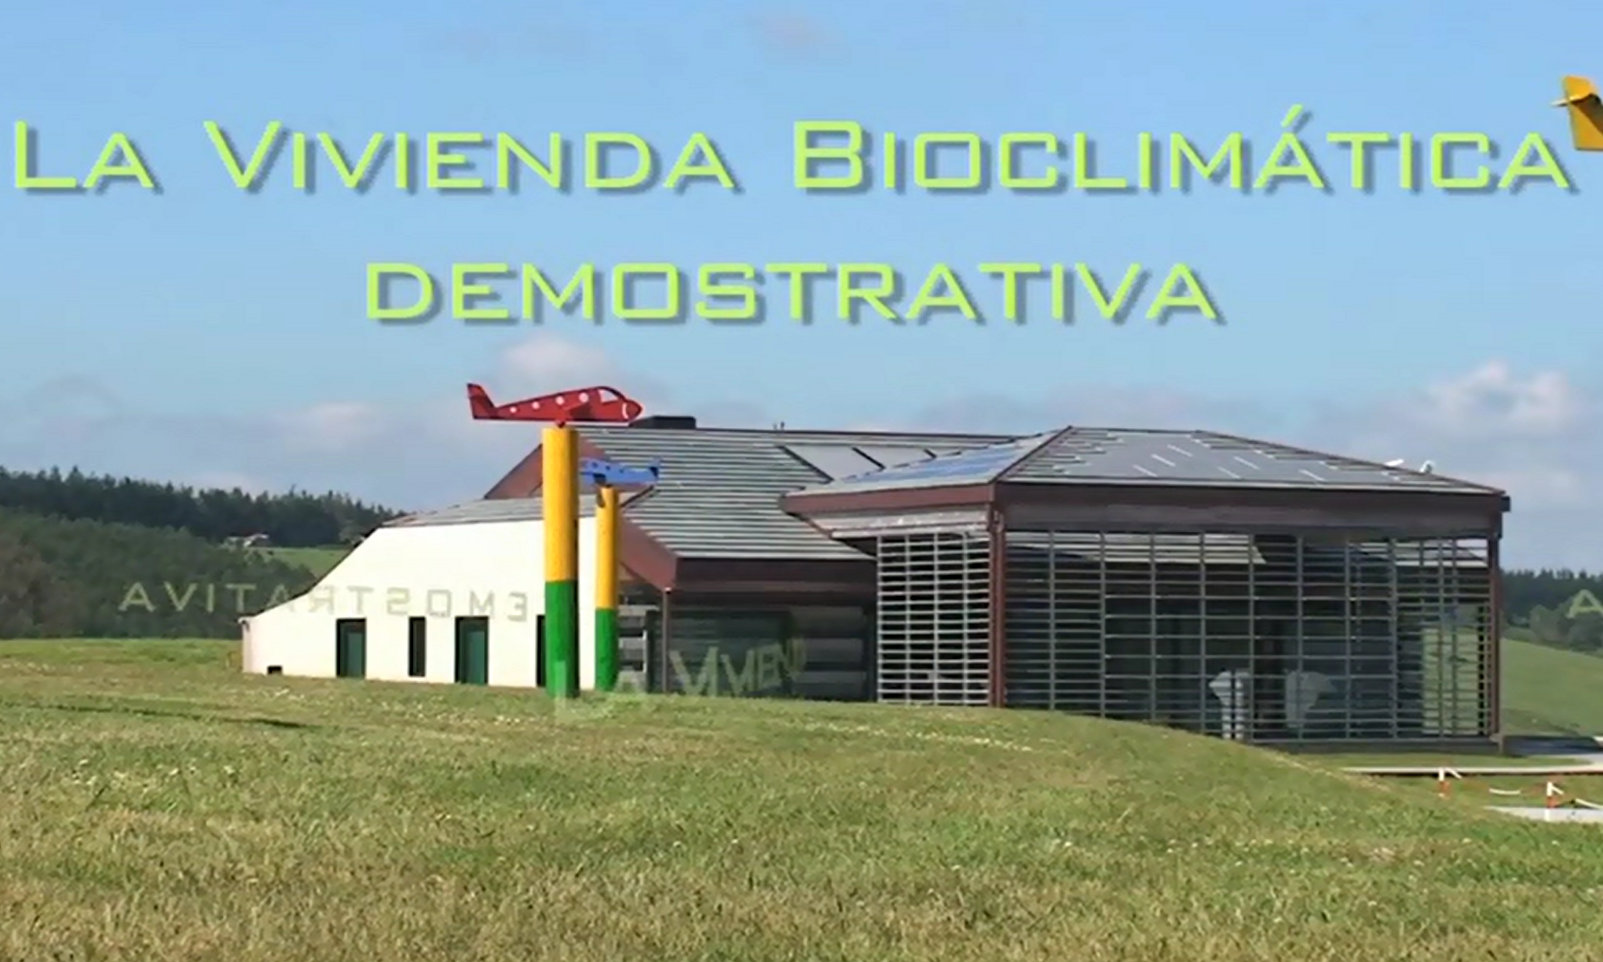 Demonstrative Bioclimatic House